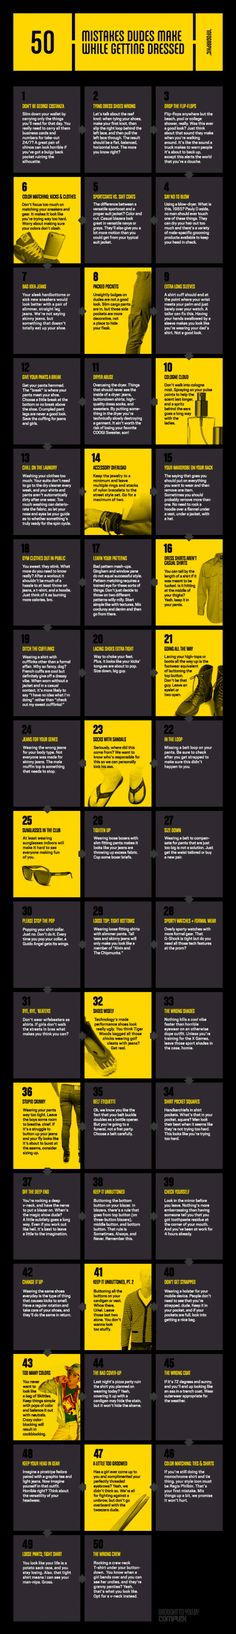 Infographic: 50 Mistakes Dudes Make While Getting Dressed